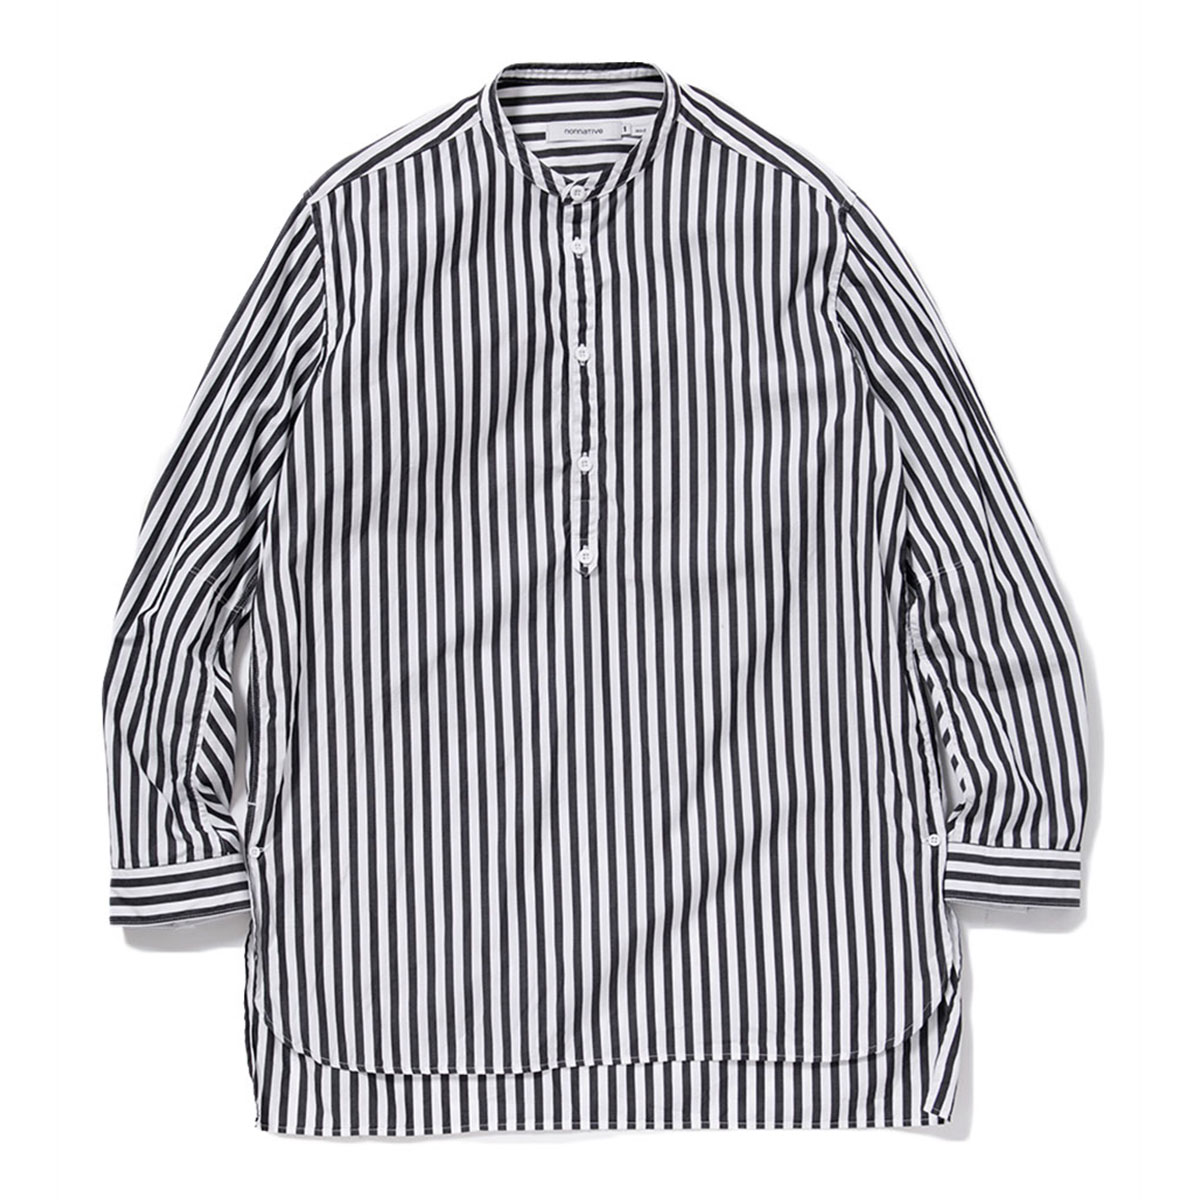 nonnative / OFFICER PULLOVER SHIRT COTTON BROAD LONDON STRIPE -BLACK